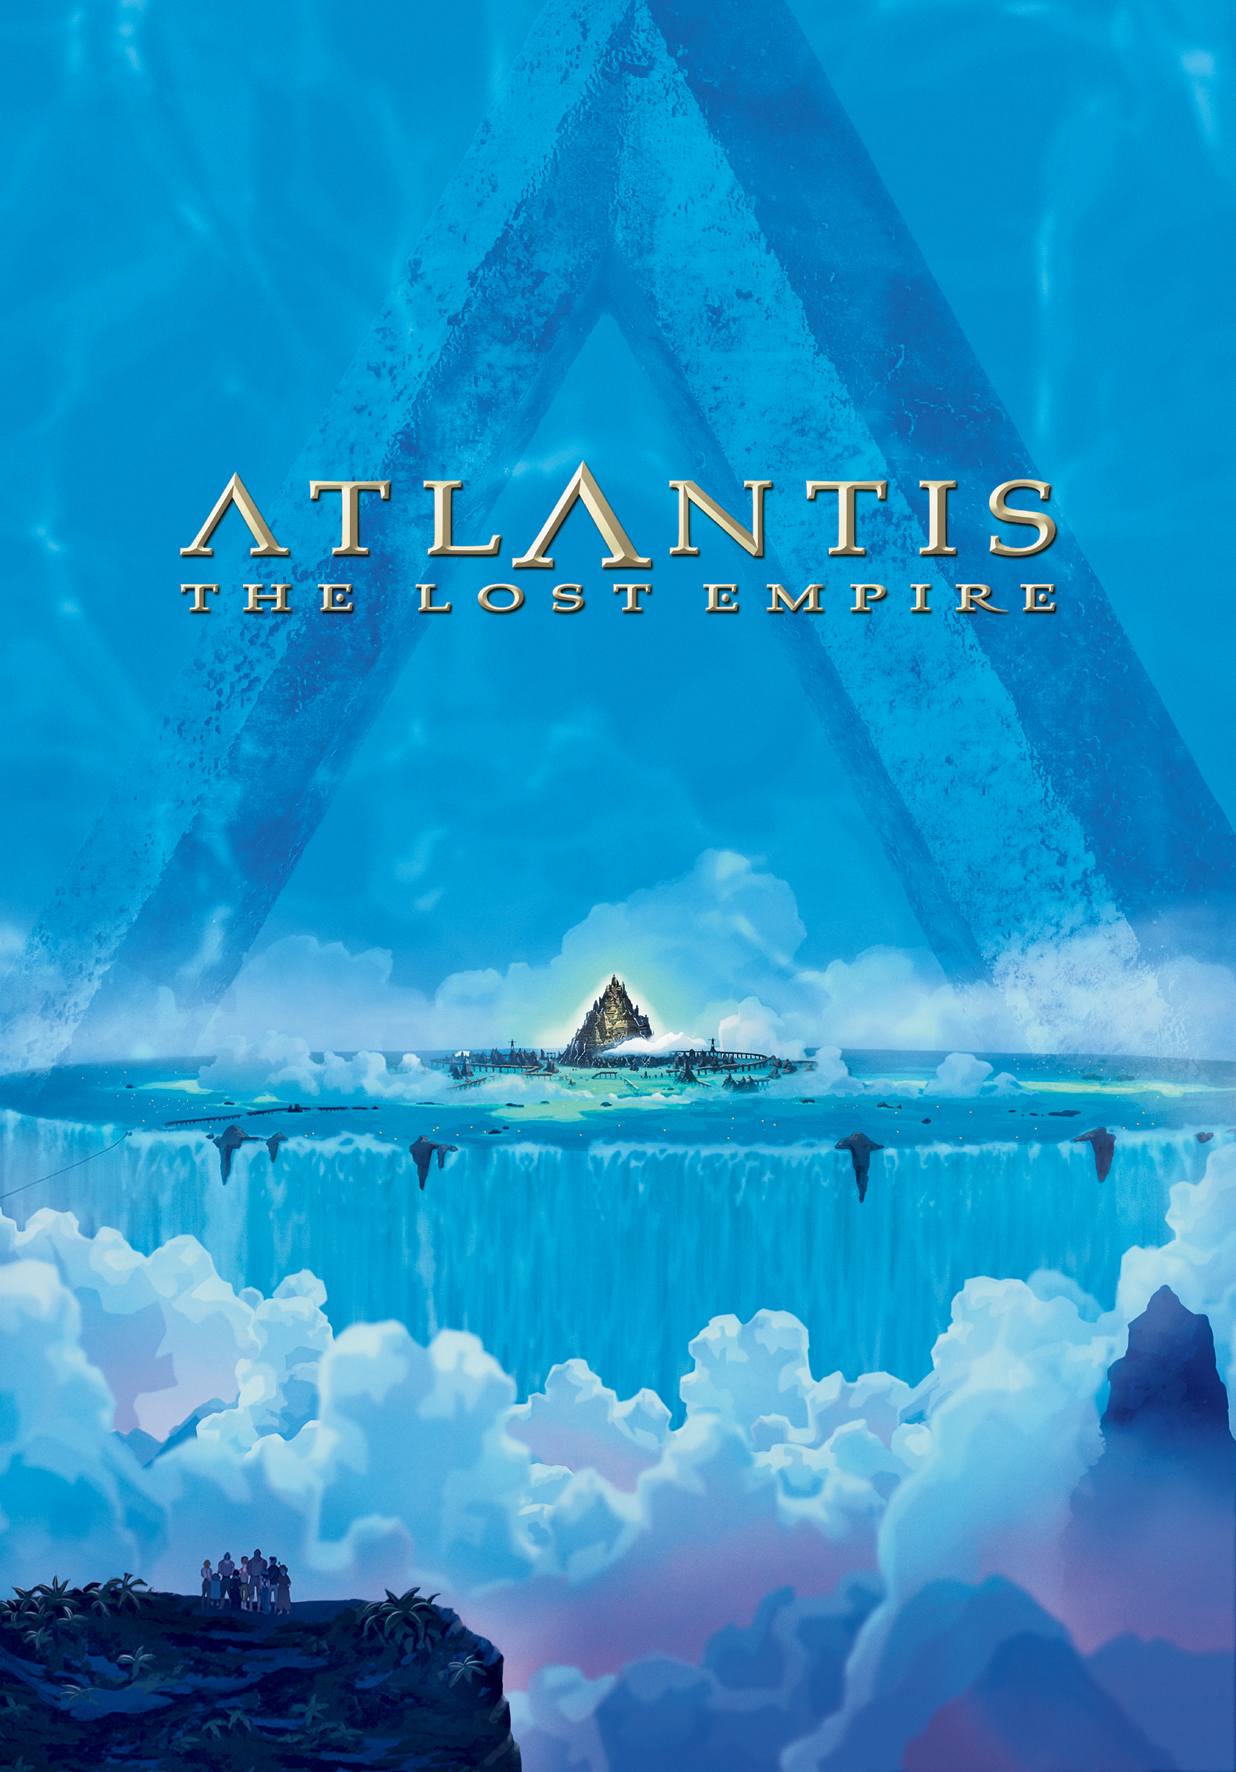 Atlantis: The Lost Empire Backgrounds on Wallpapers Vista